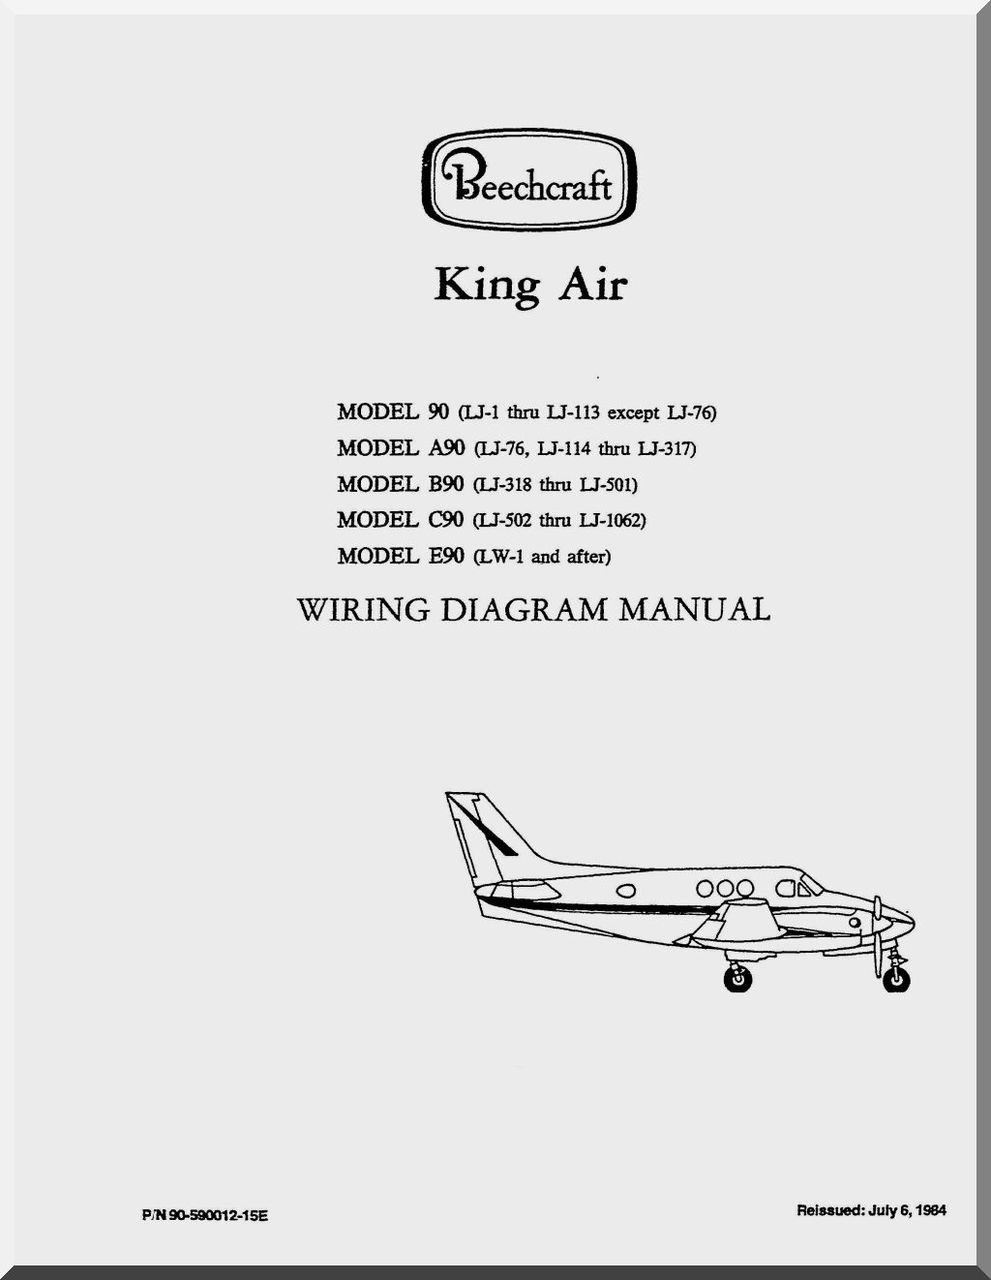 Swell Beechcraft King Air 90 A90 B90 C90 E90 Aircraft Wiring Diagram Wiring Cloud Philuggs Outletorg